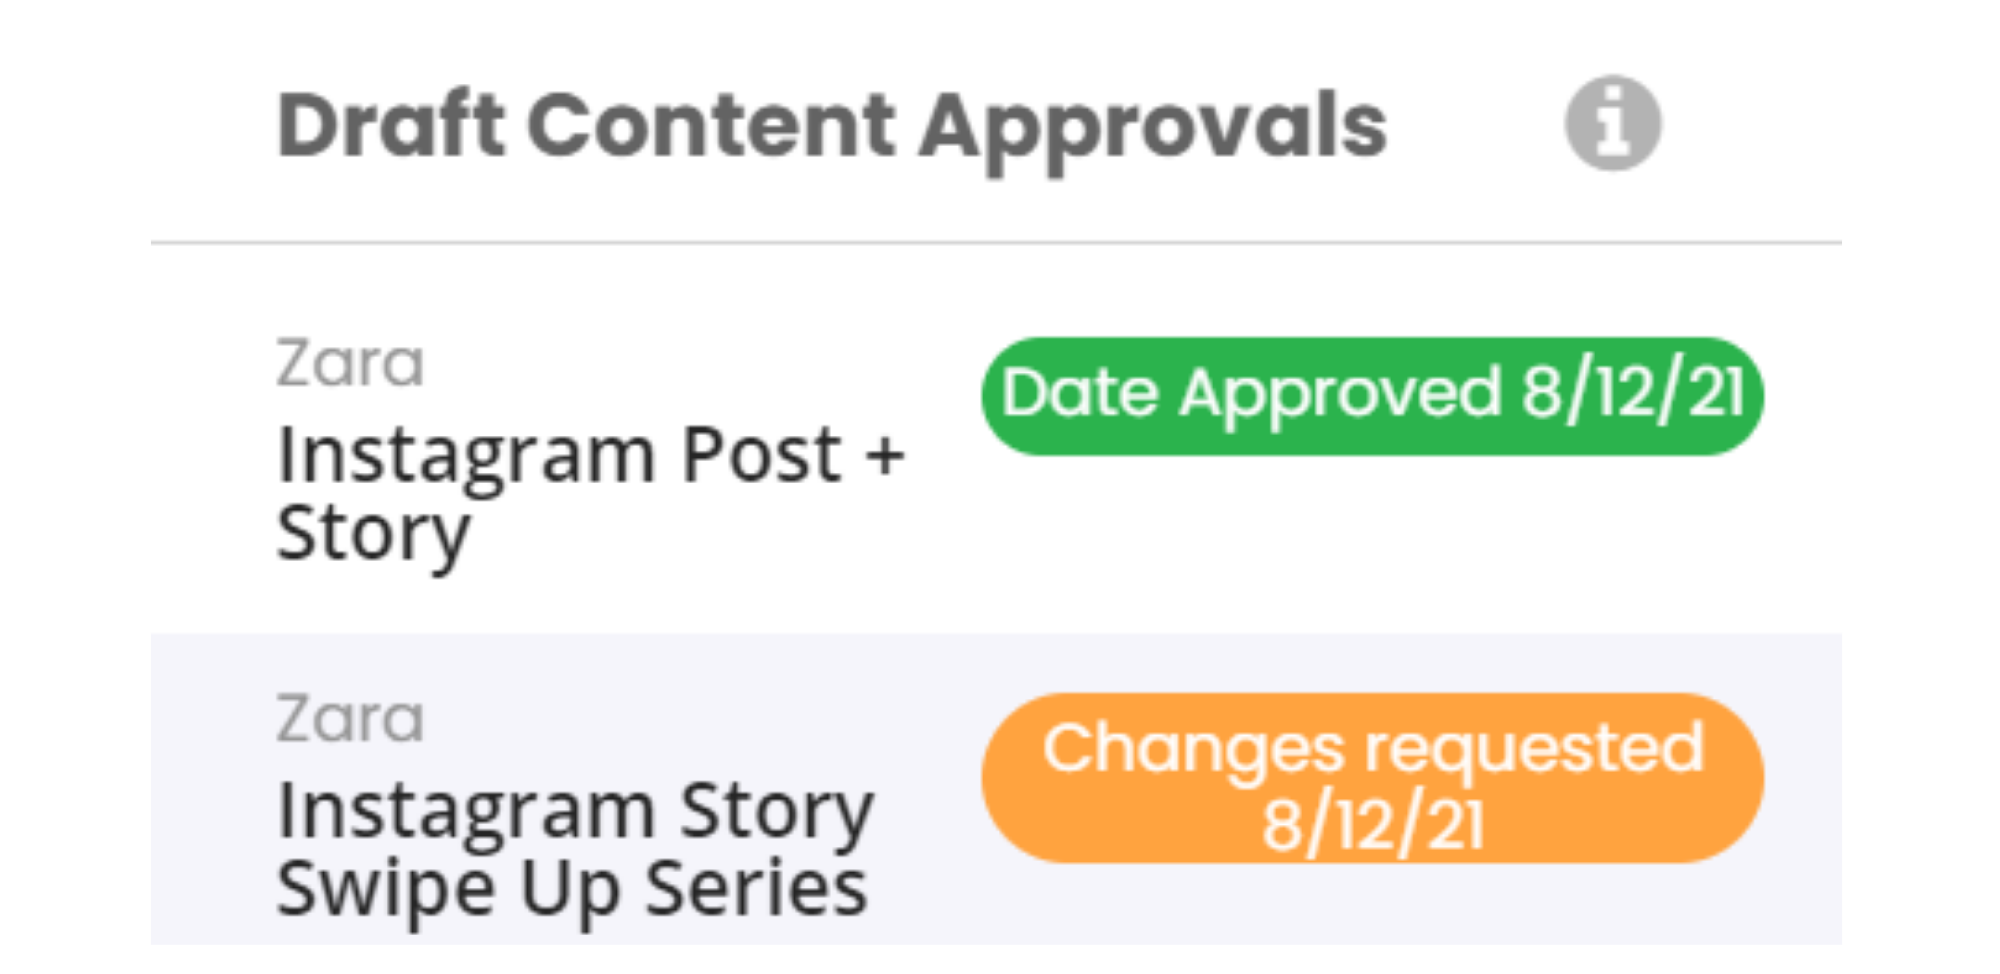 Draft Content Approvals